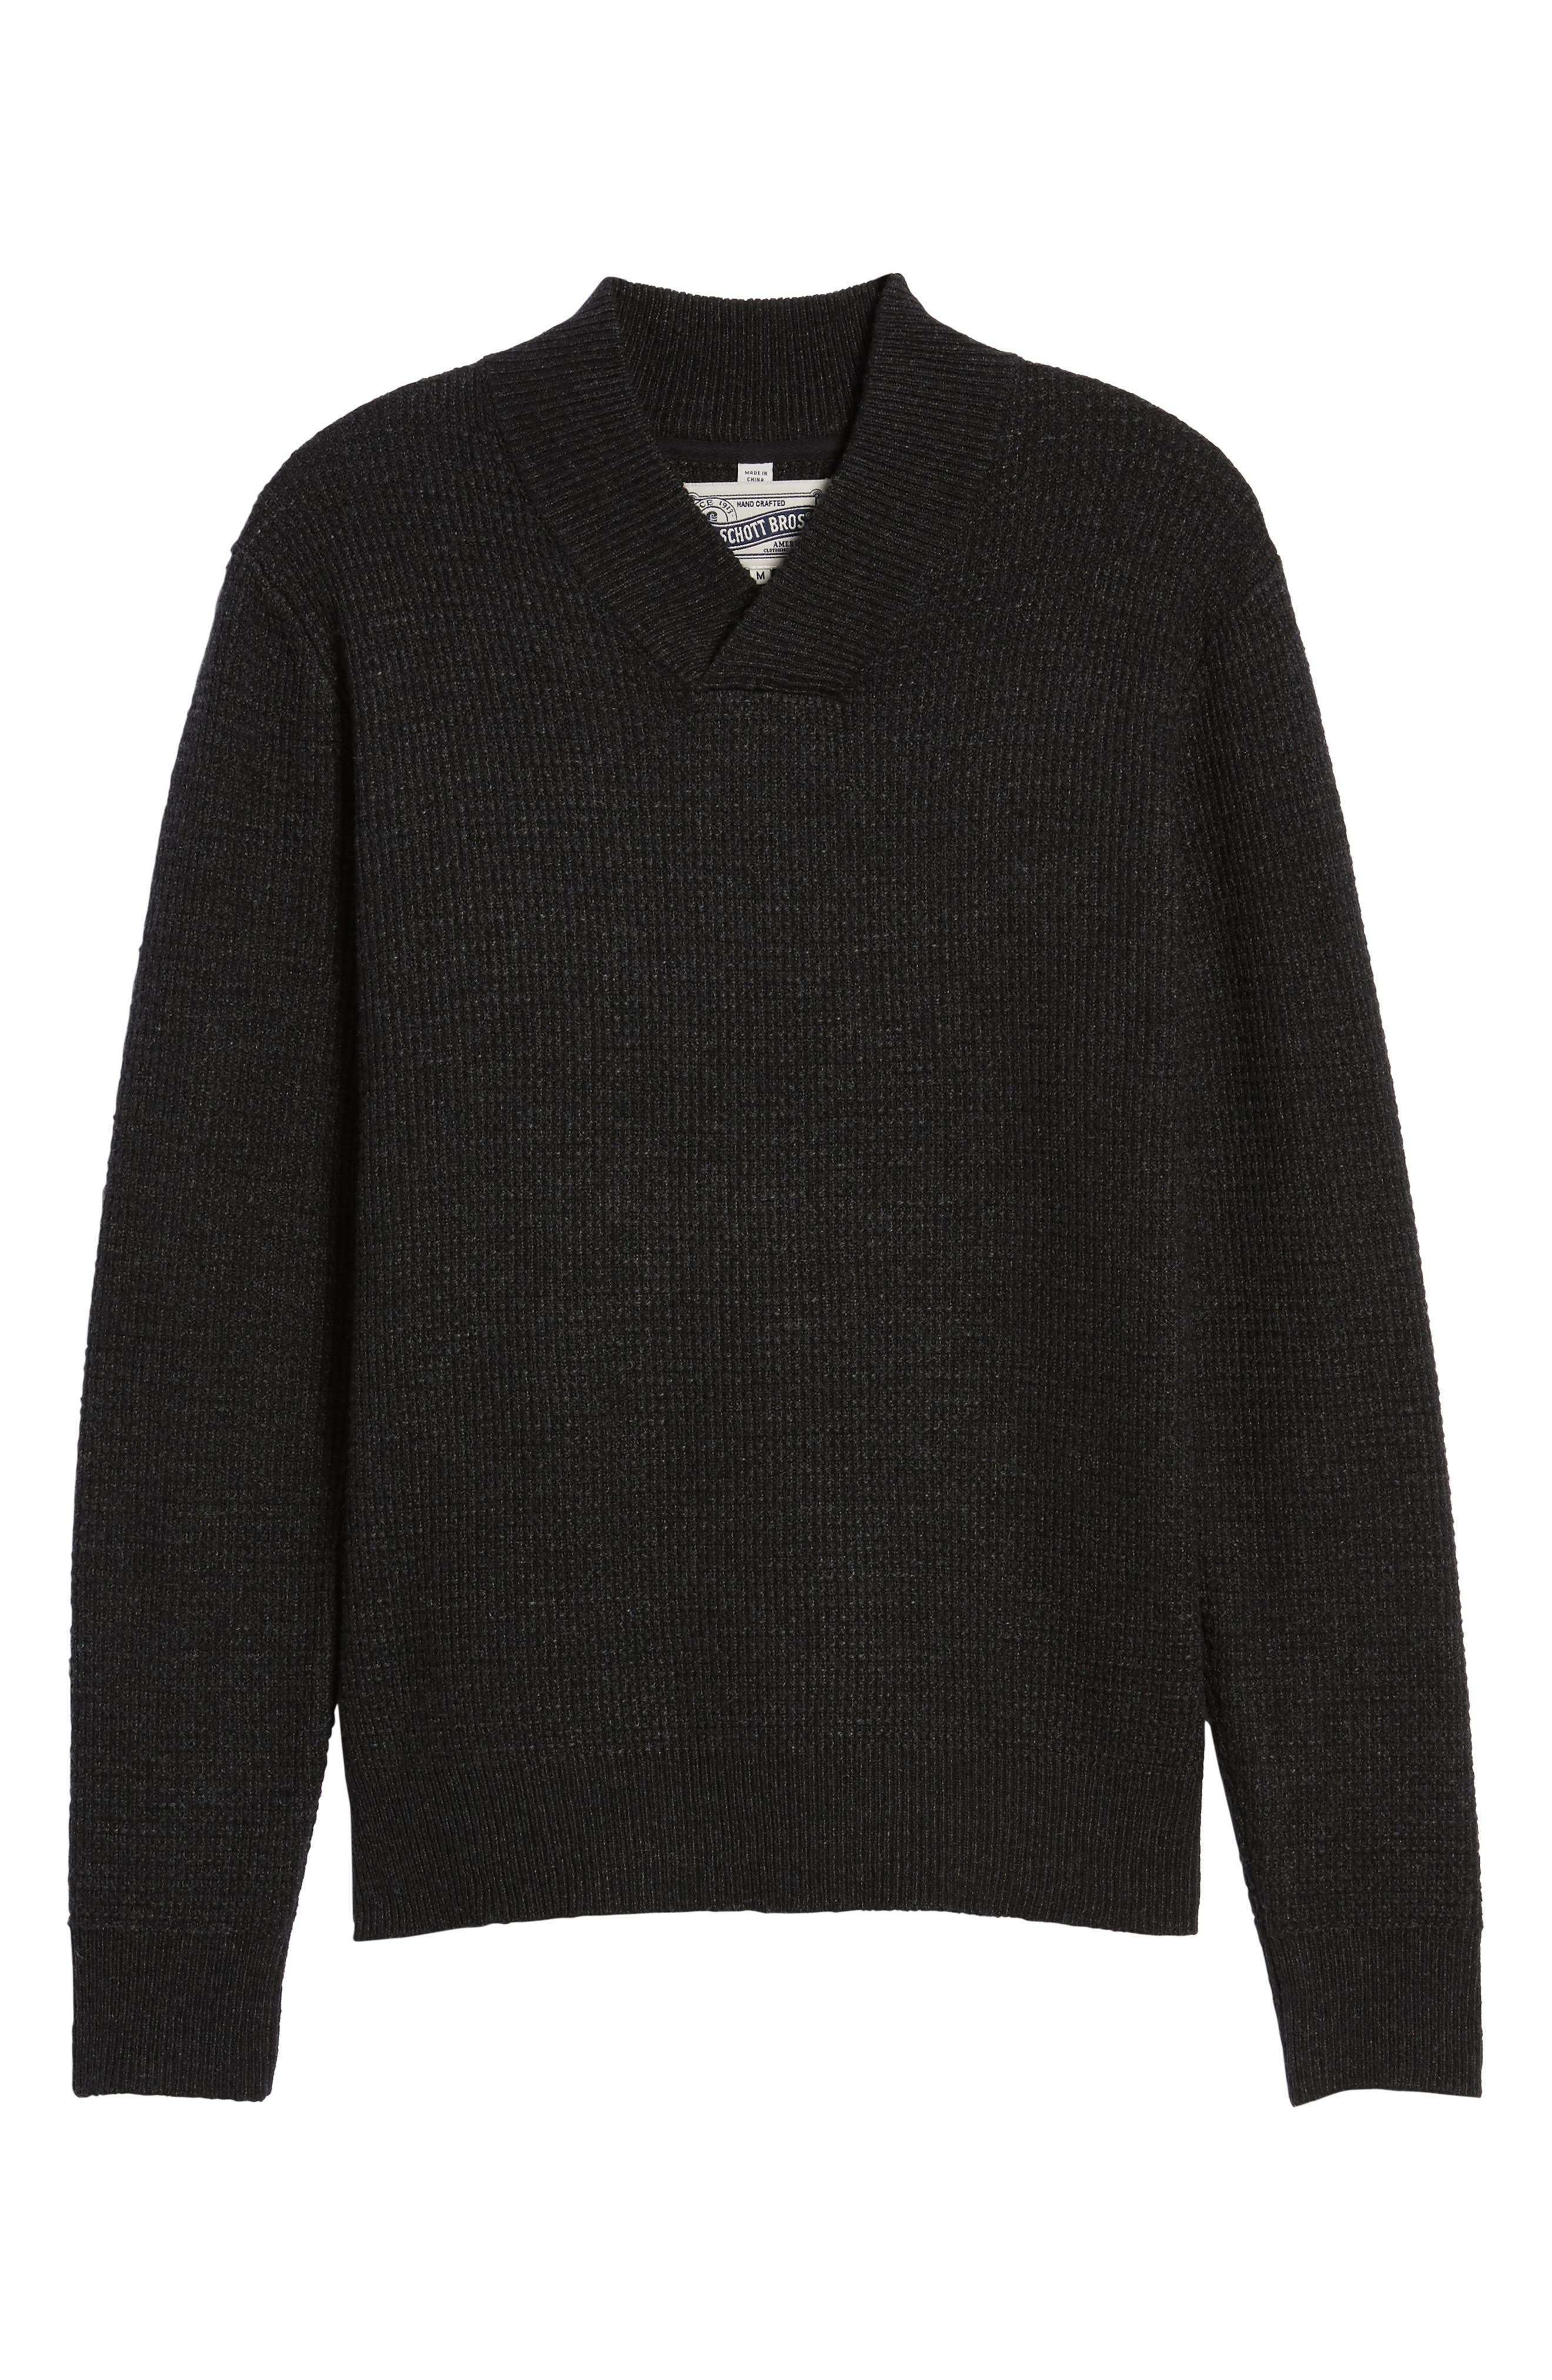 Waffle Knit Thermal Wool Blend Pullover,                             Alternate thumbnail 6, color,                             BLACK